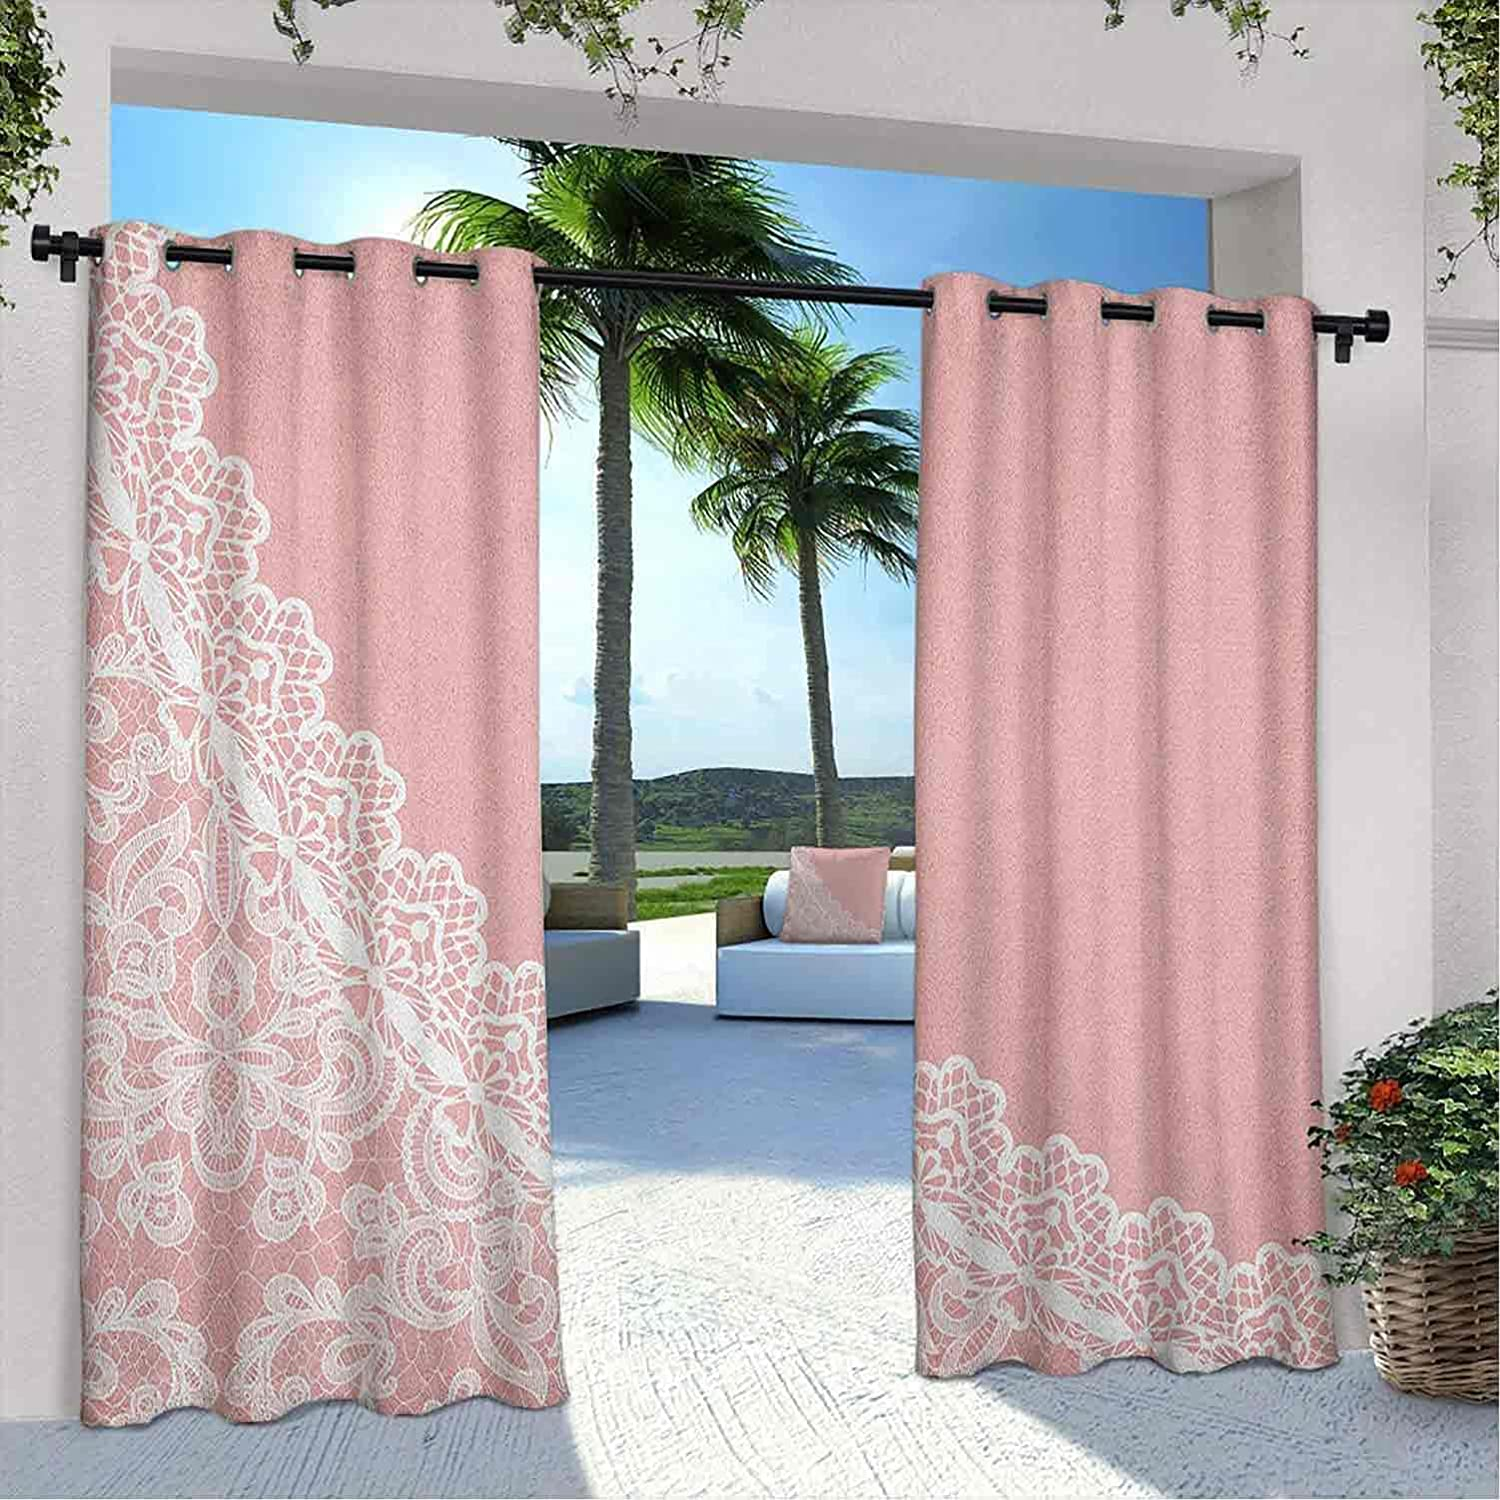 Printed Outdoor Pink and Financial sales sale White Lace Borde Ranking TOP18 Old Fashioned Curtain